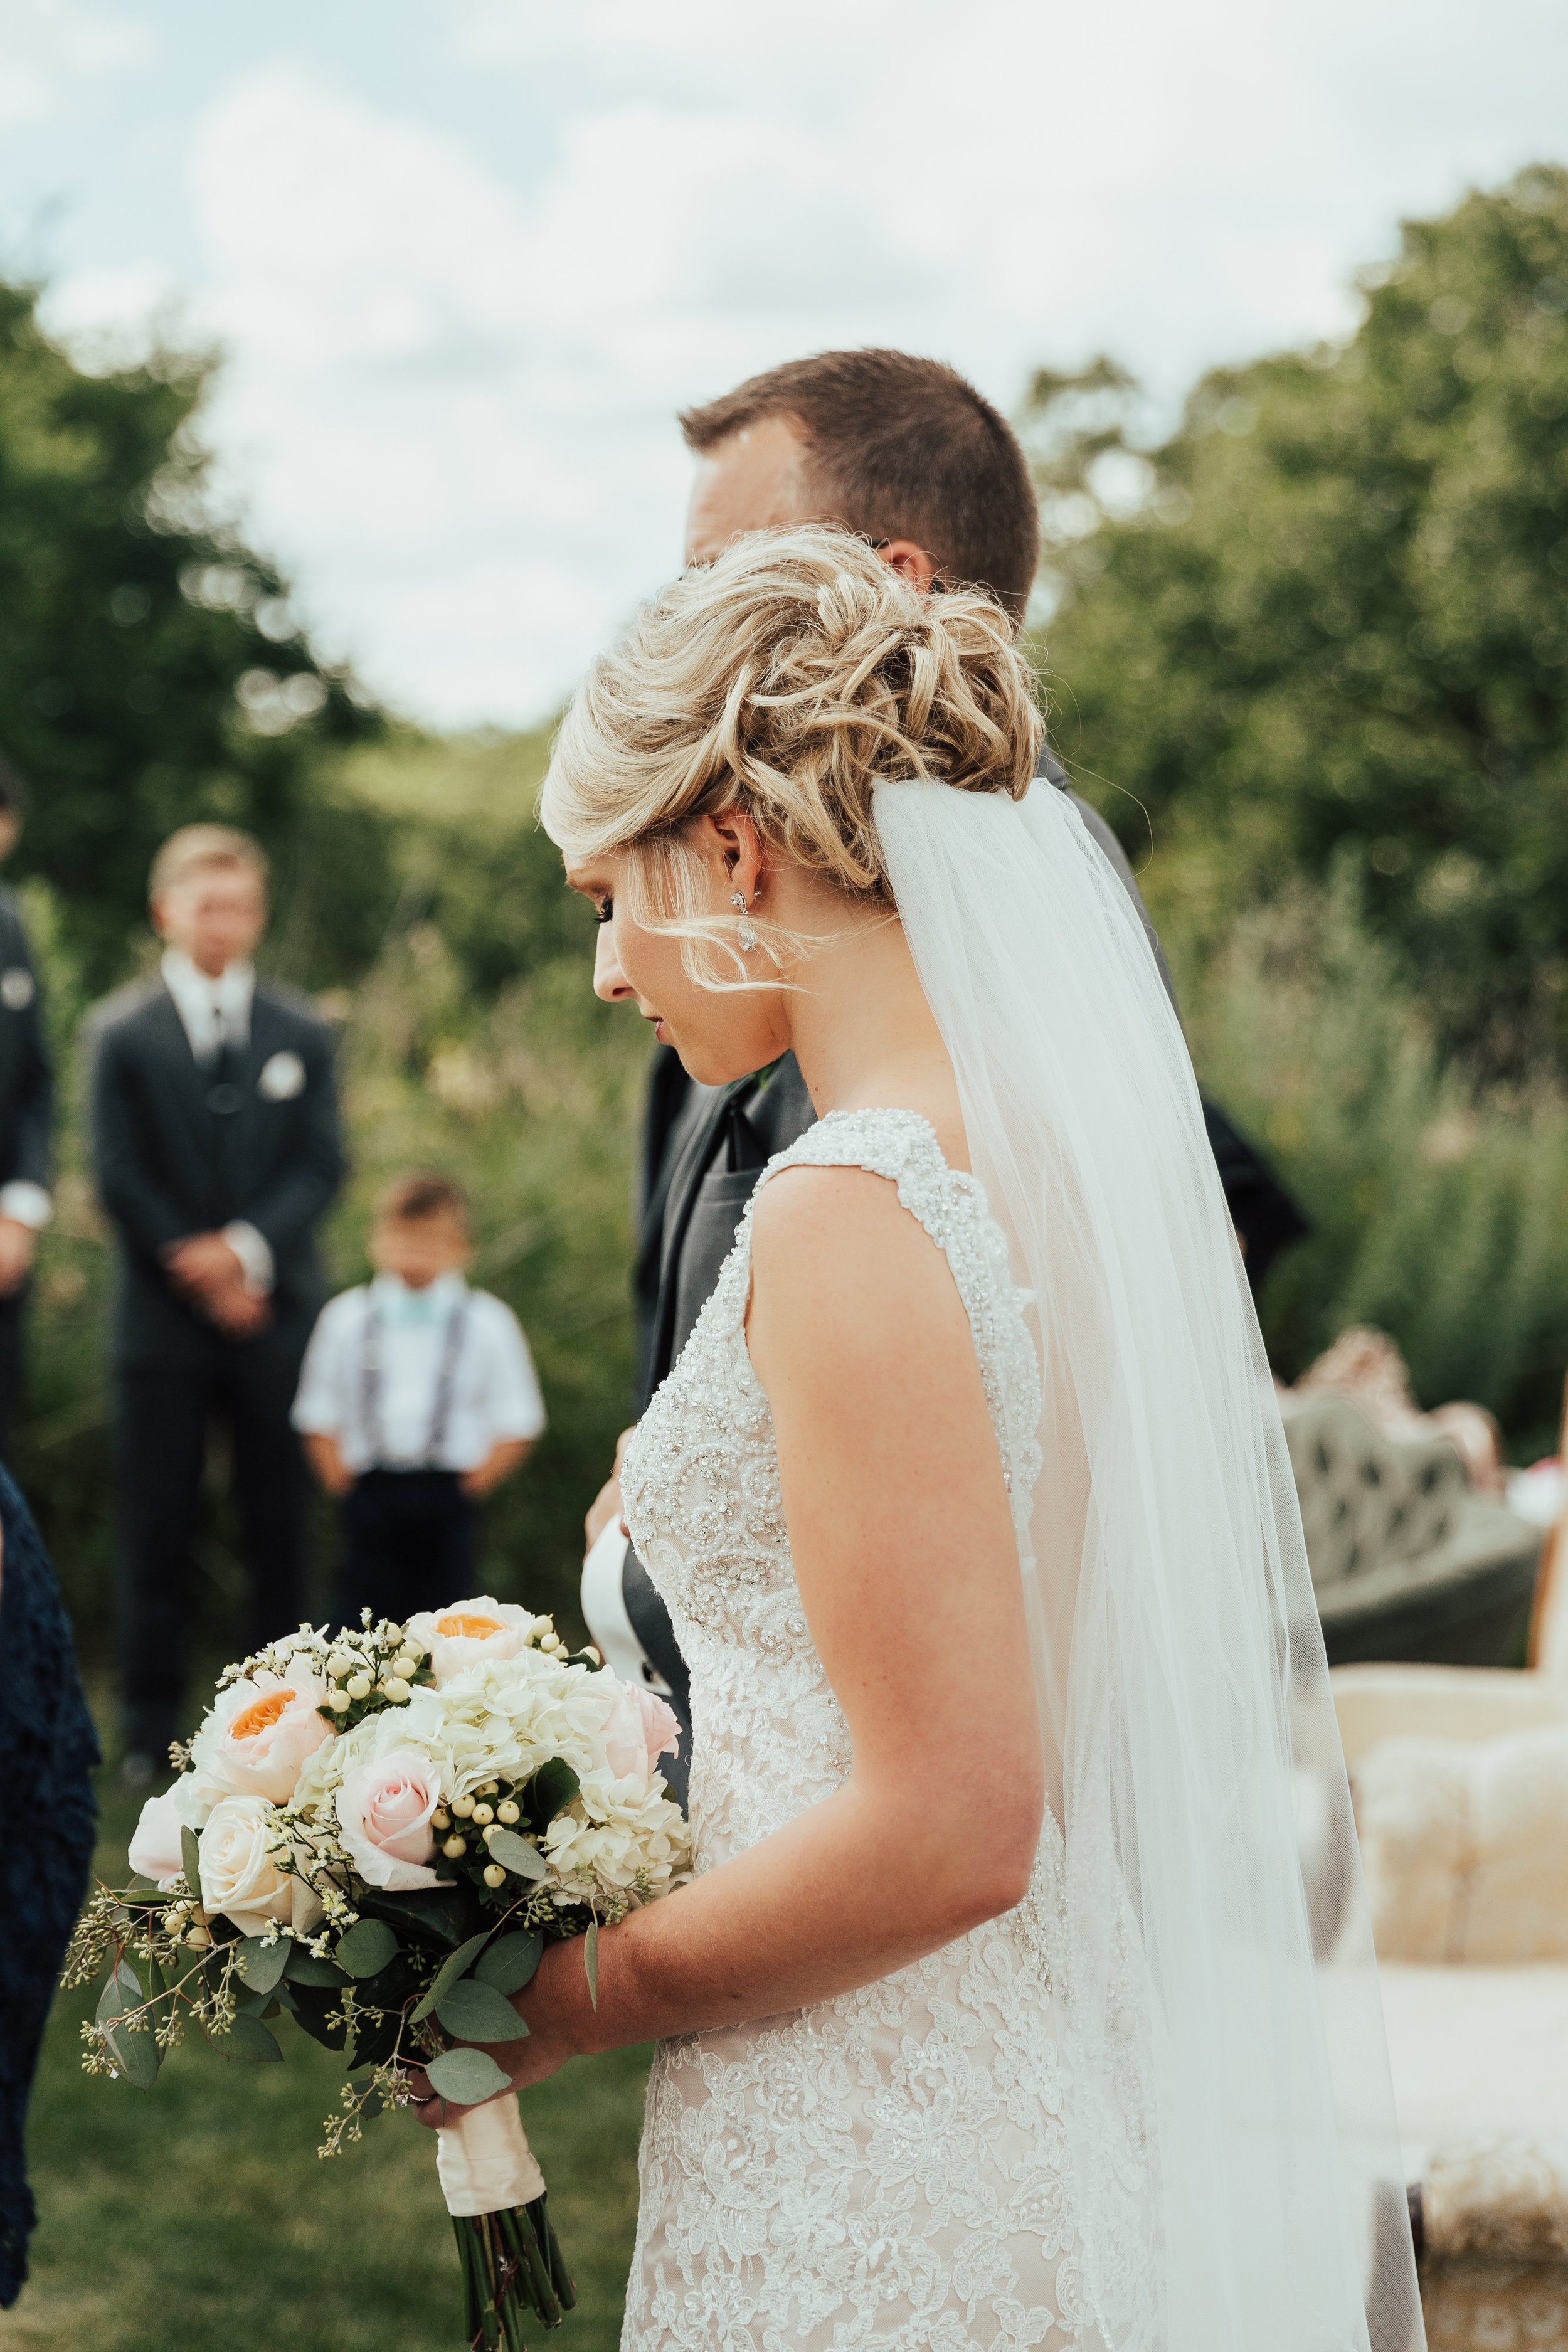 bride walking to the altar with his dad, veil tucked under her low bun | Janelle Elise | Megan + Corey | Furber Farm | Sixpence Events | A Vintage Touch Weddings103.jpg